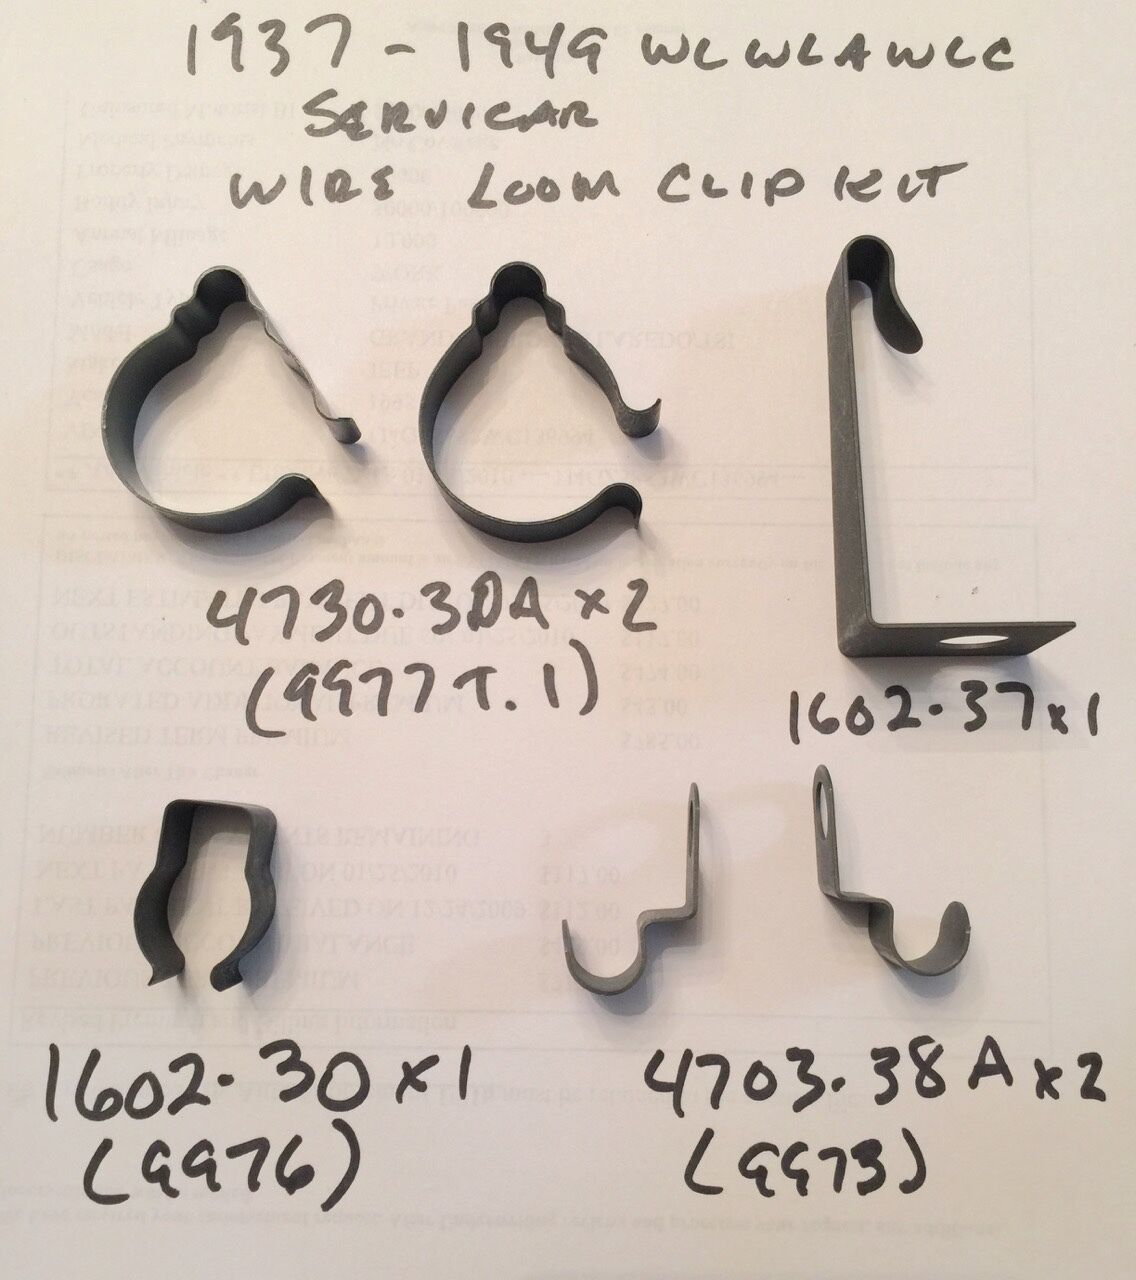 Harley 1937 1949 Wl Wla Servicar Main Wire Loom Clip Clamp Kit Wiring Clips 19371949 160237 473030